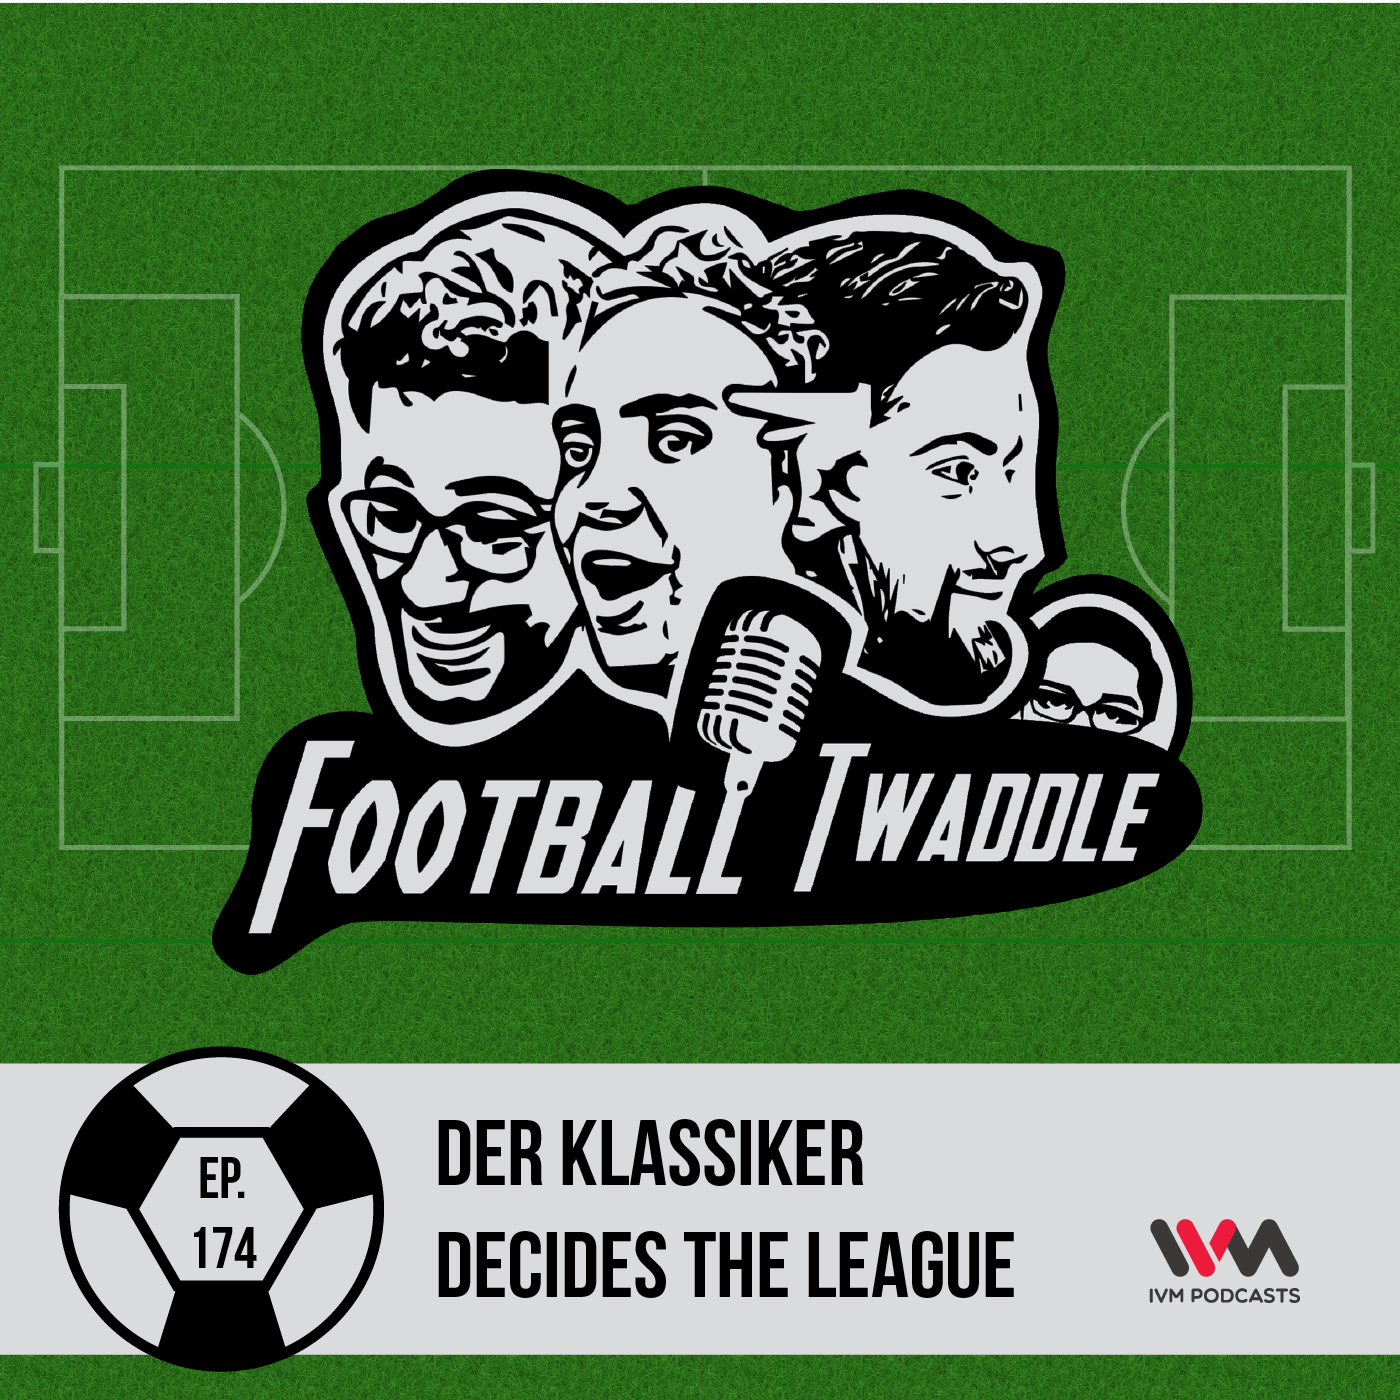 Der Klassiker decides the league